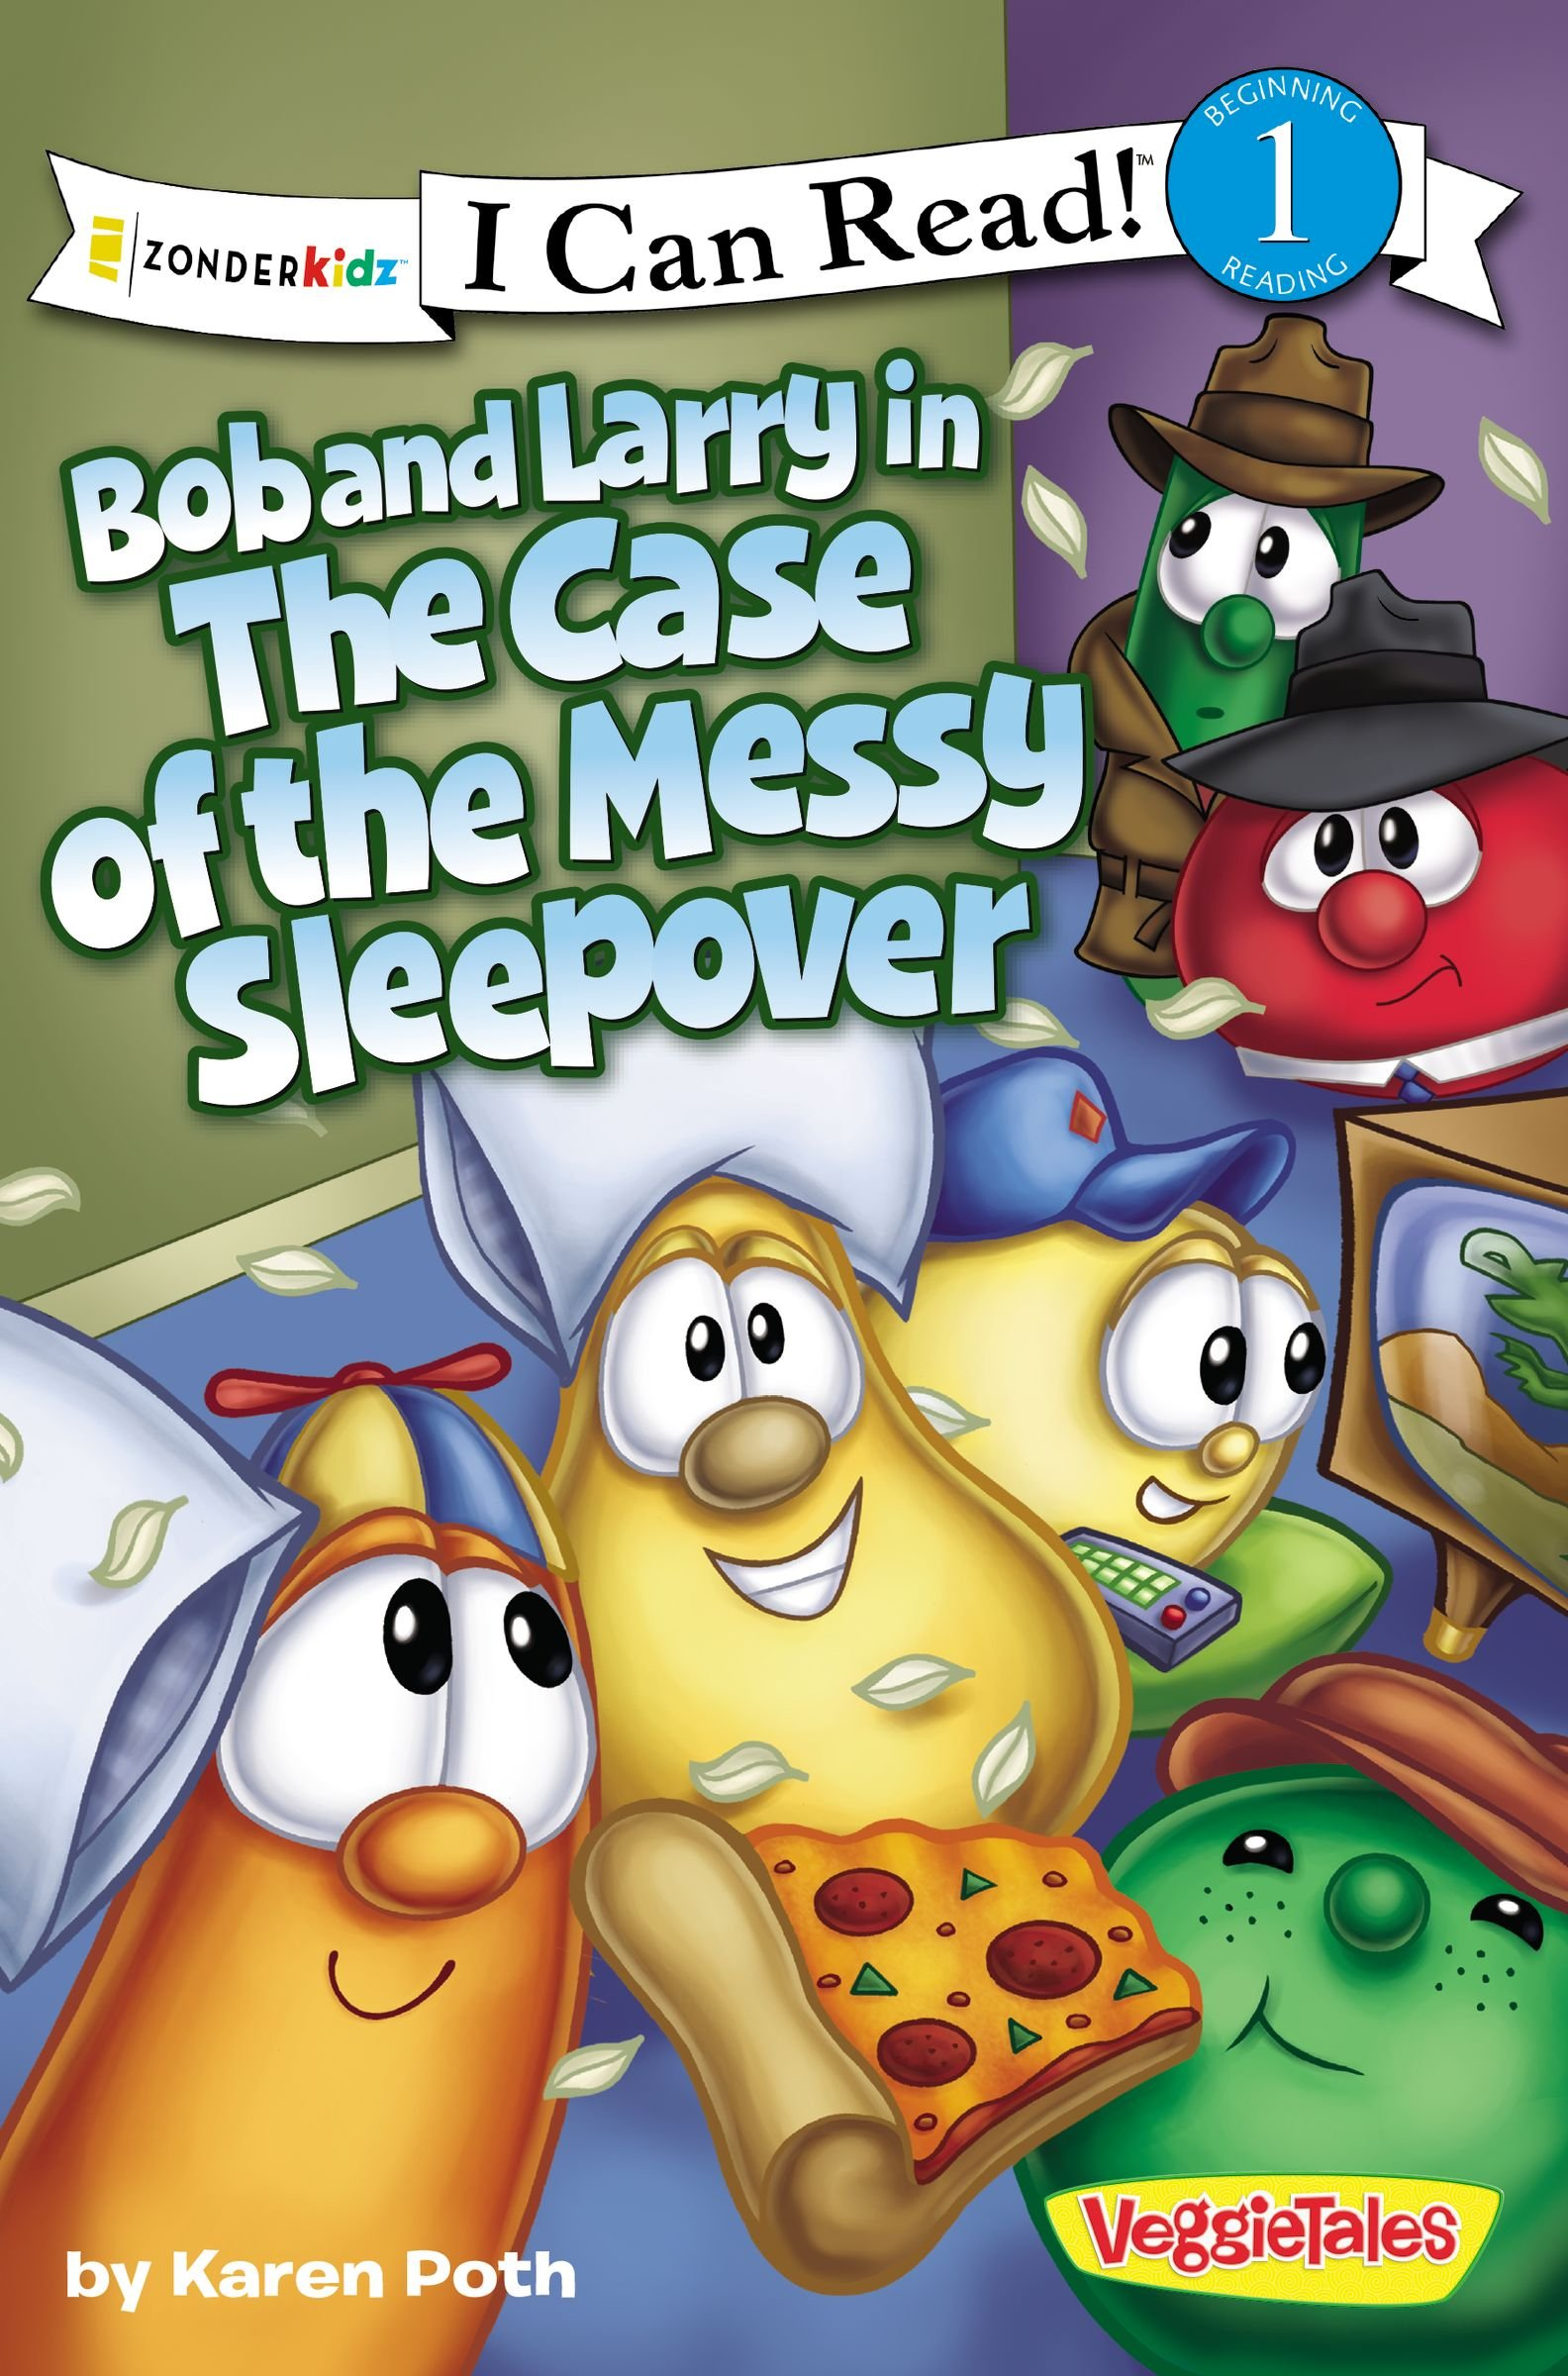 Bob and Larry in the Case of the Messy Sleepover (I Can Read! / Big Idea Books / VeggieTales) PDF